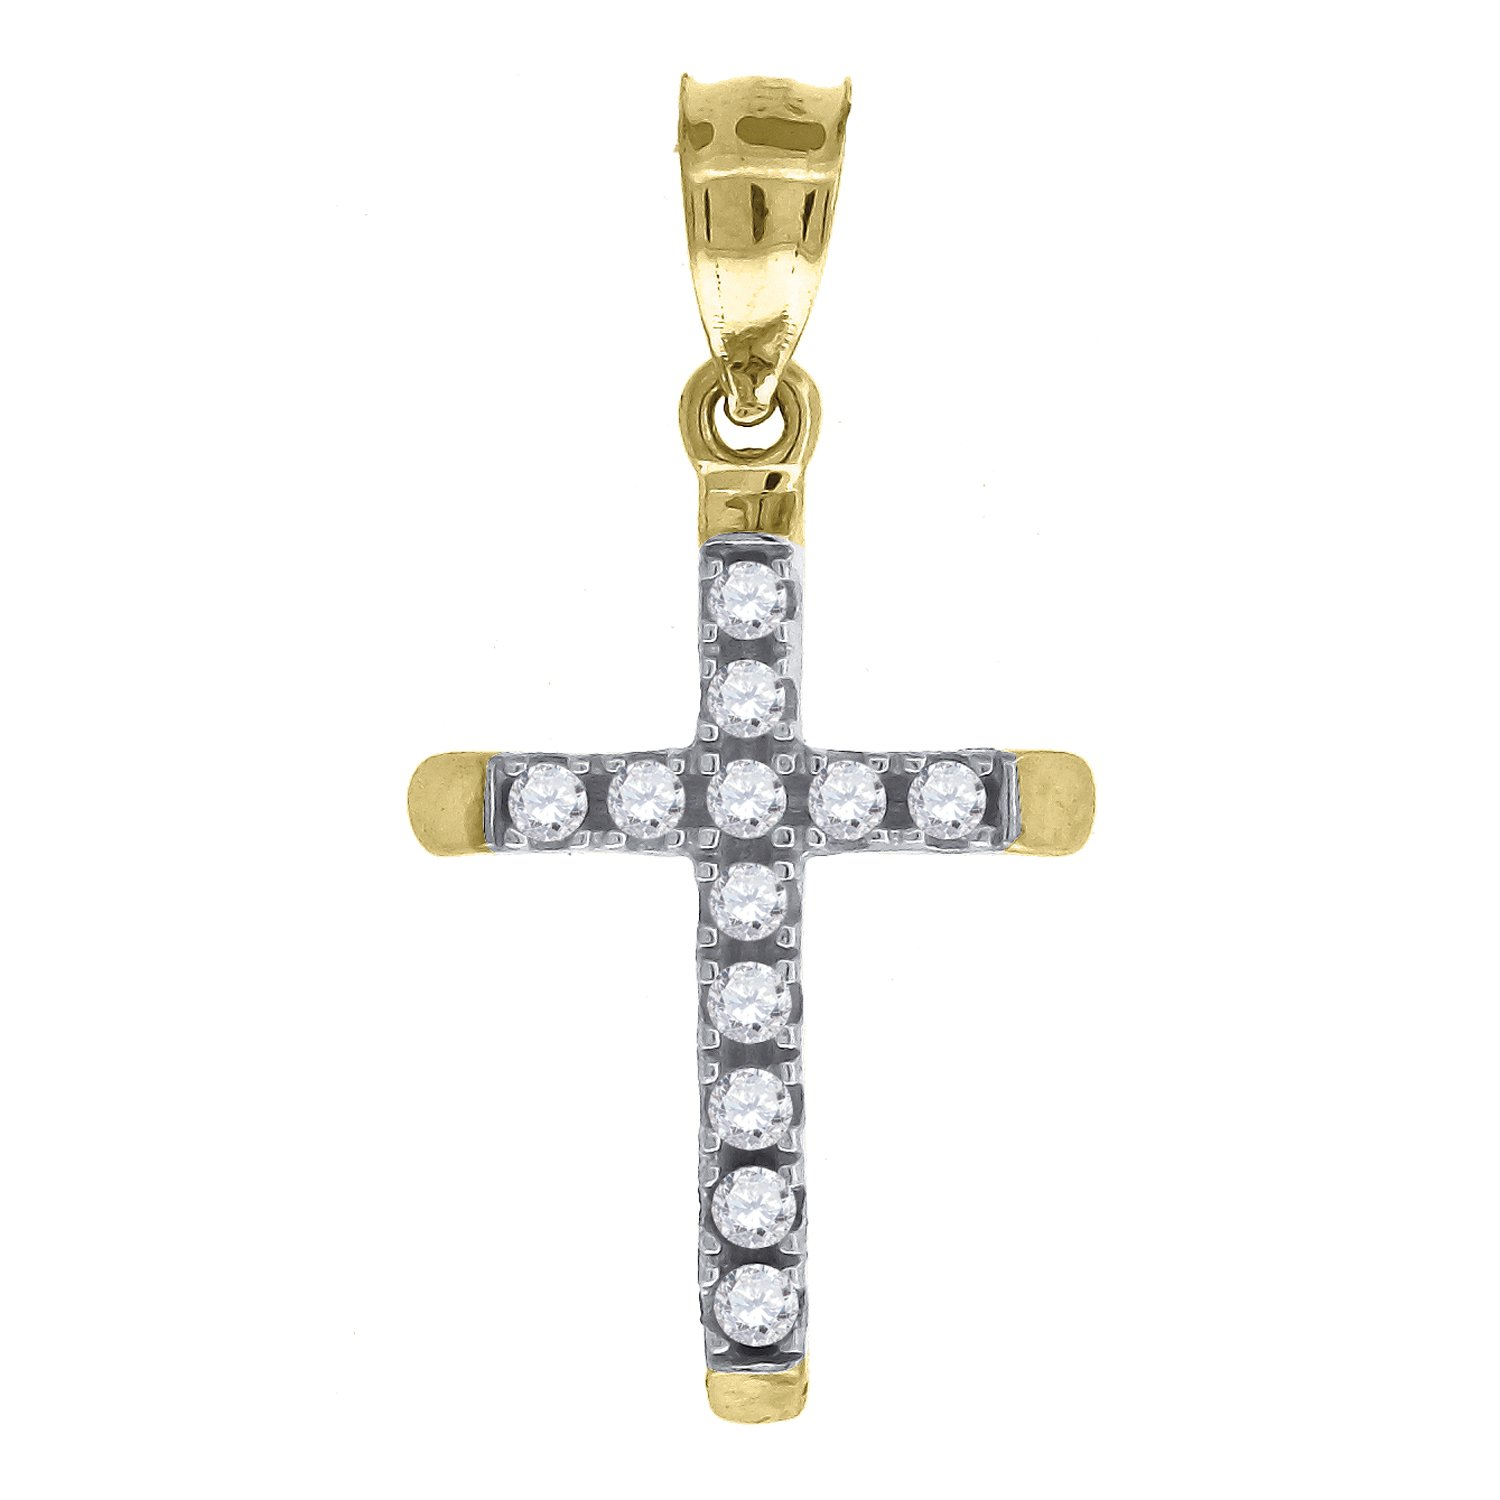 Jawa Jewelers 14kt Gold Womens Two-Tone DC Cross Ht:22.3mm Religious Pendant Charm